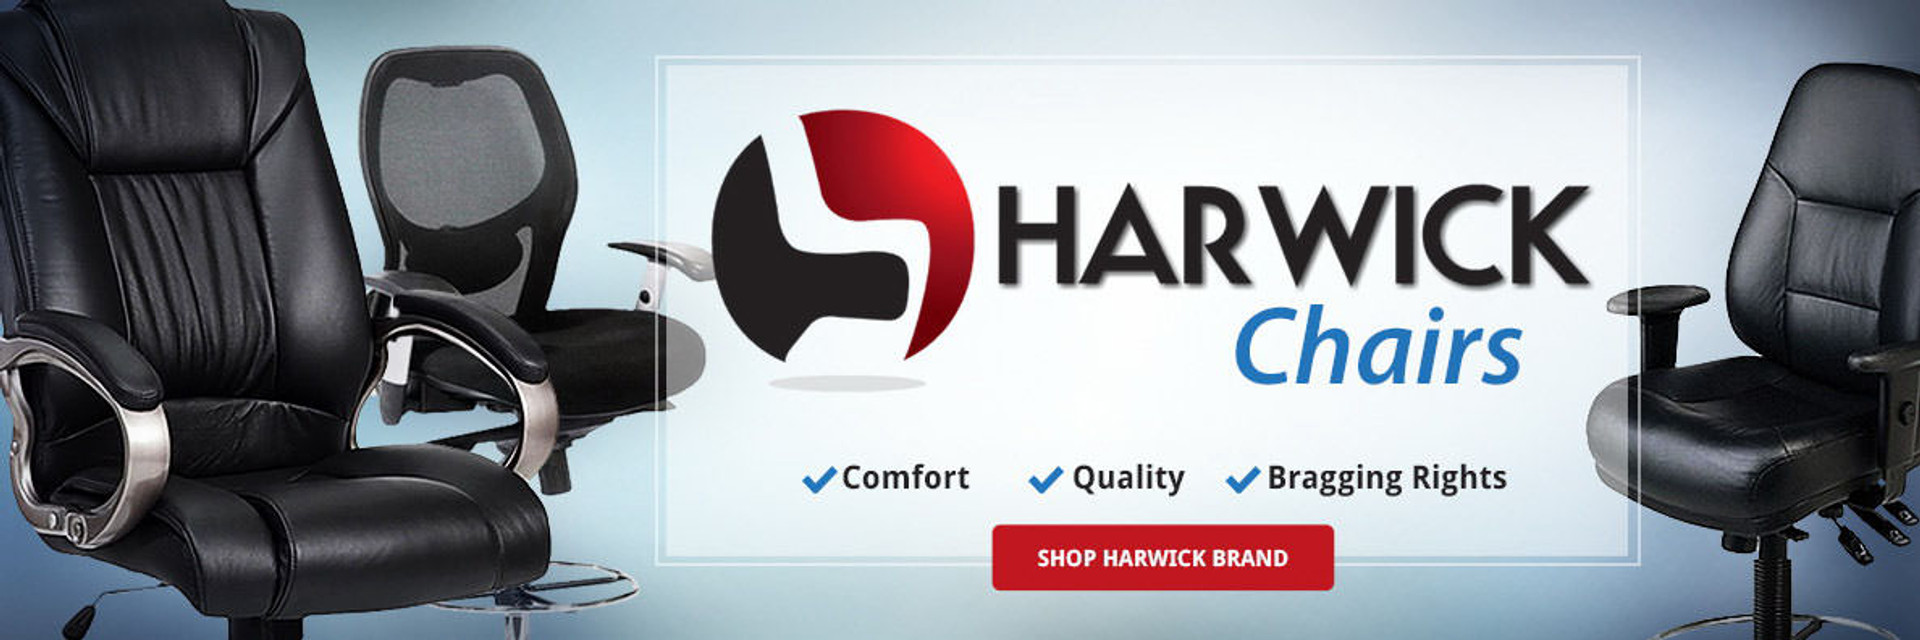 Shop Harwick chairs for the ultimate in comfort and quality